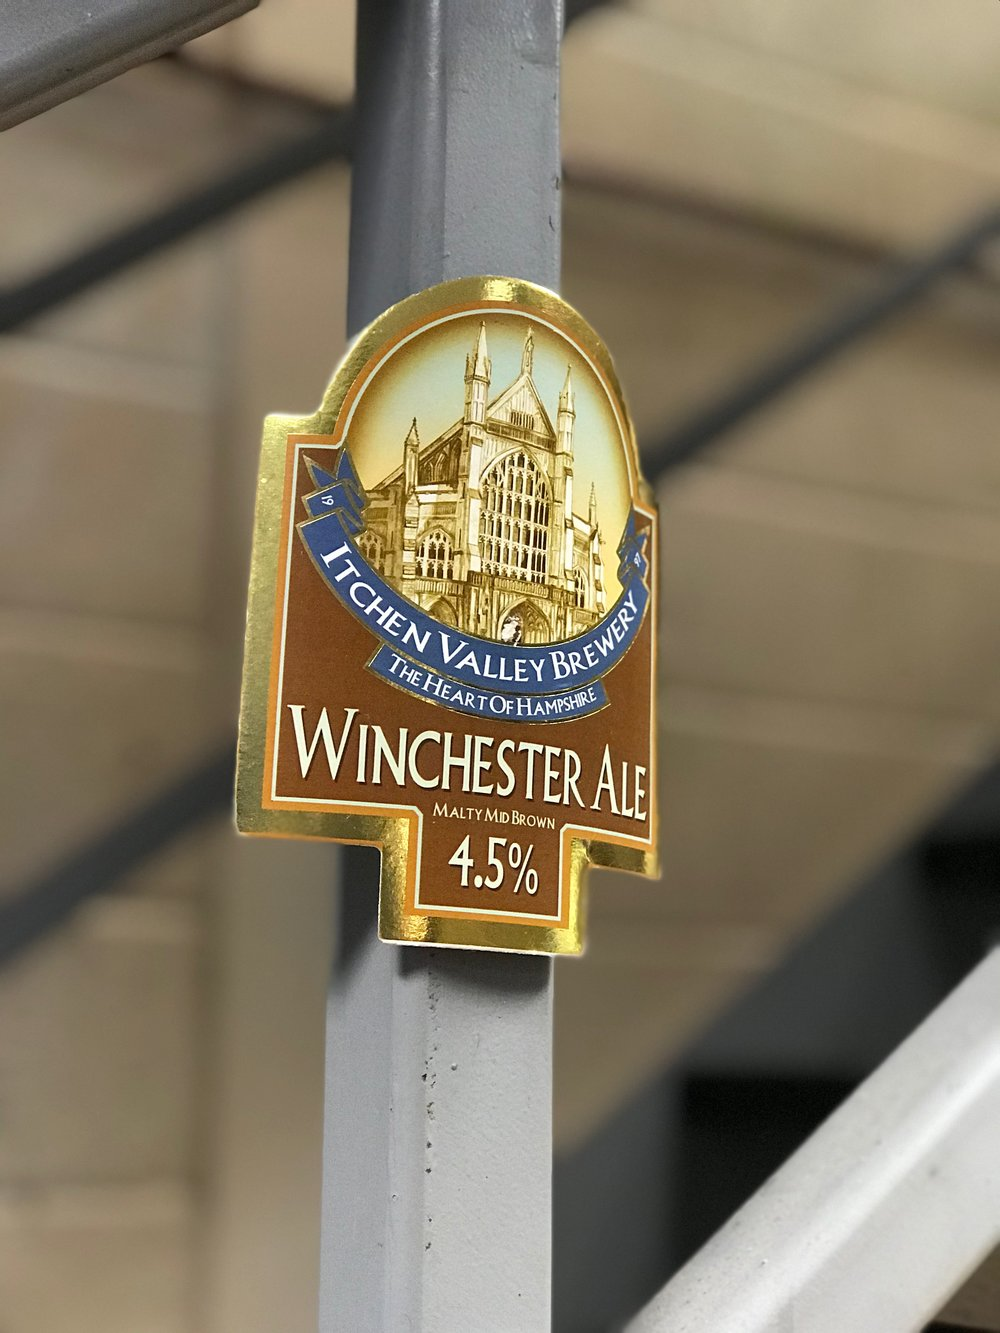 Glad to see the Winchester Ale